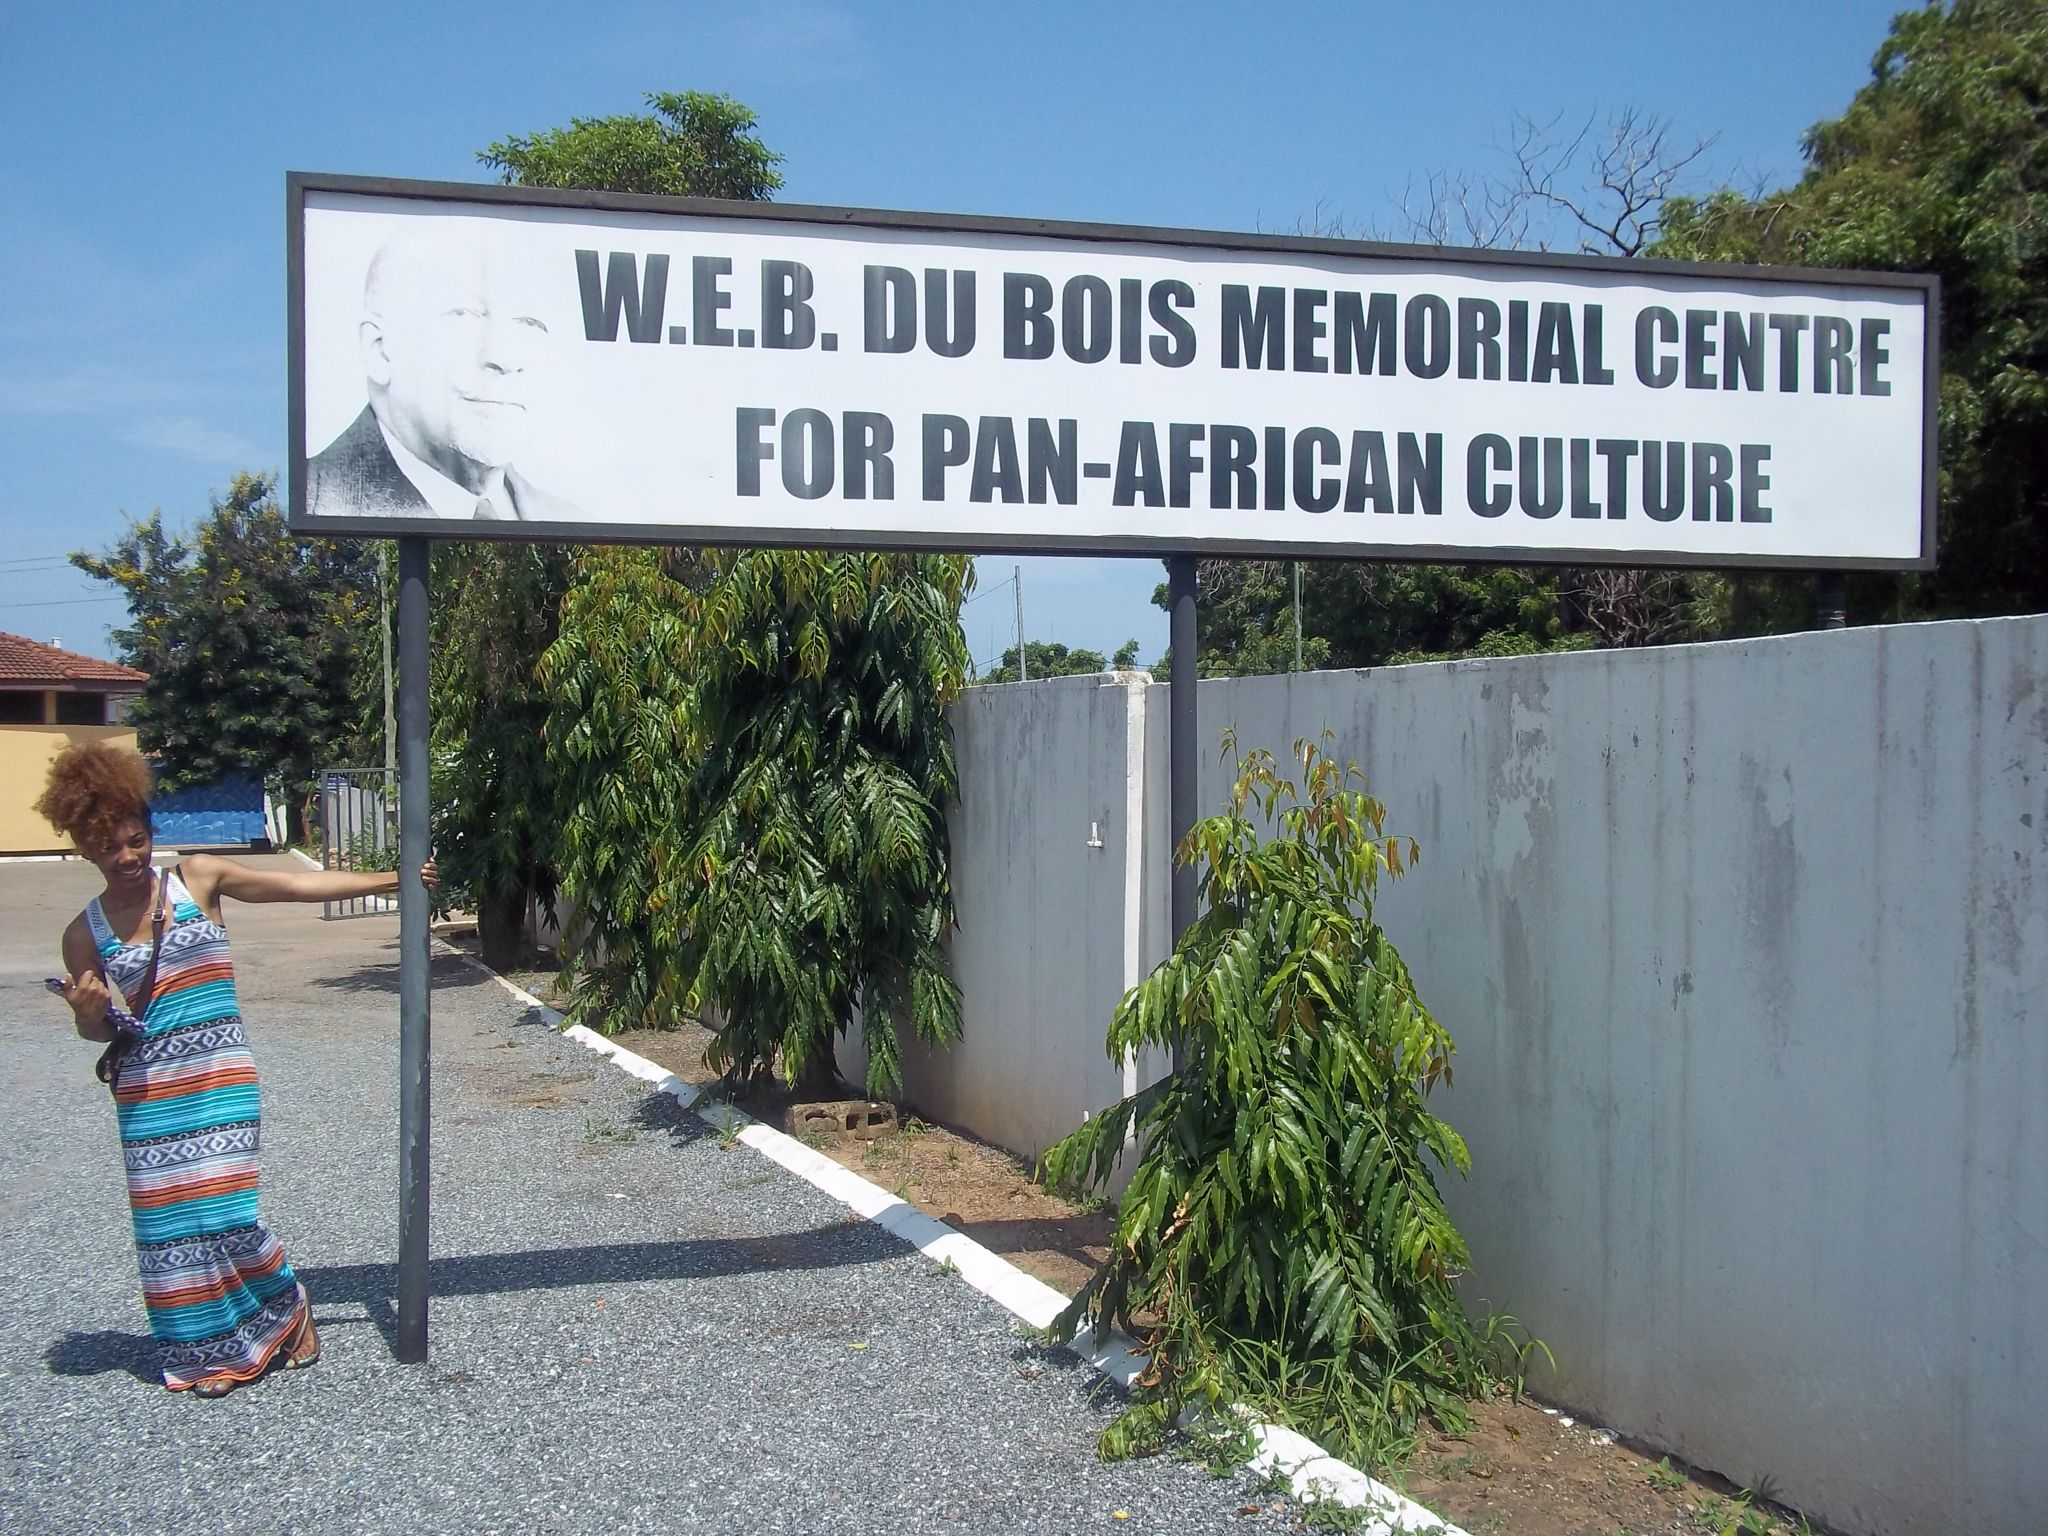 w e b dubois cultural center west africa we call it w e b dubois cultural center west africa